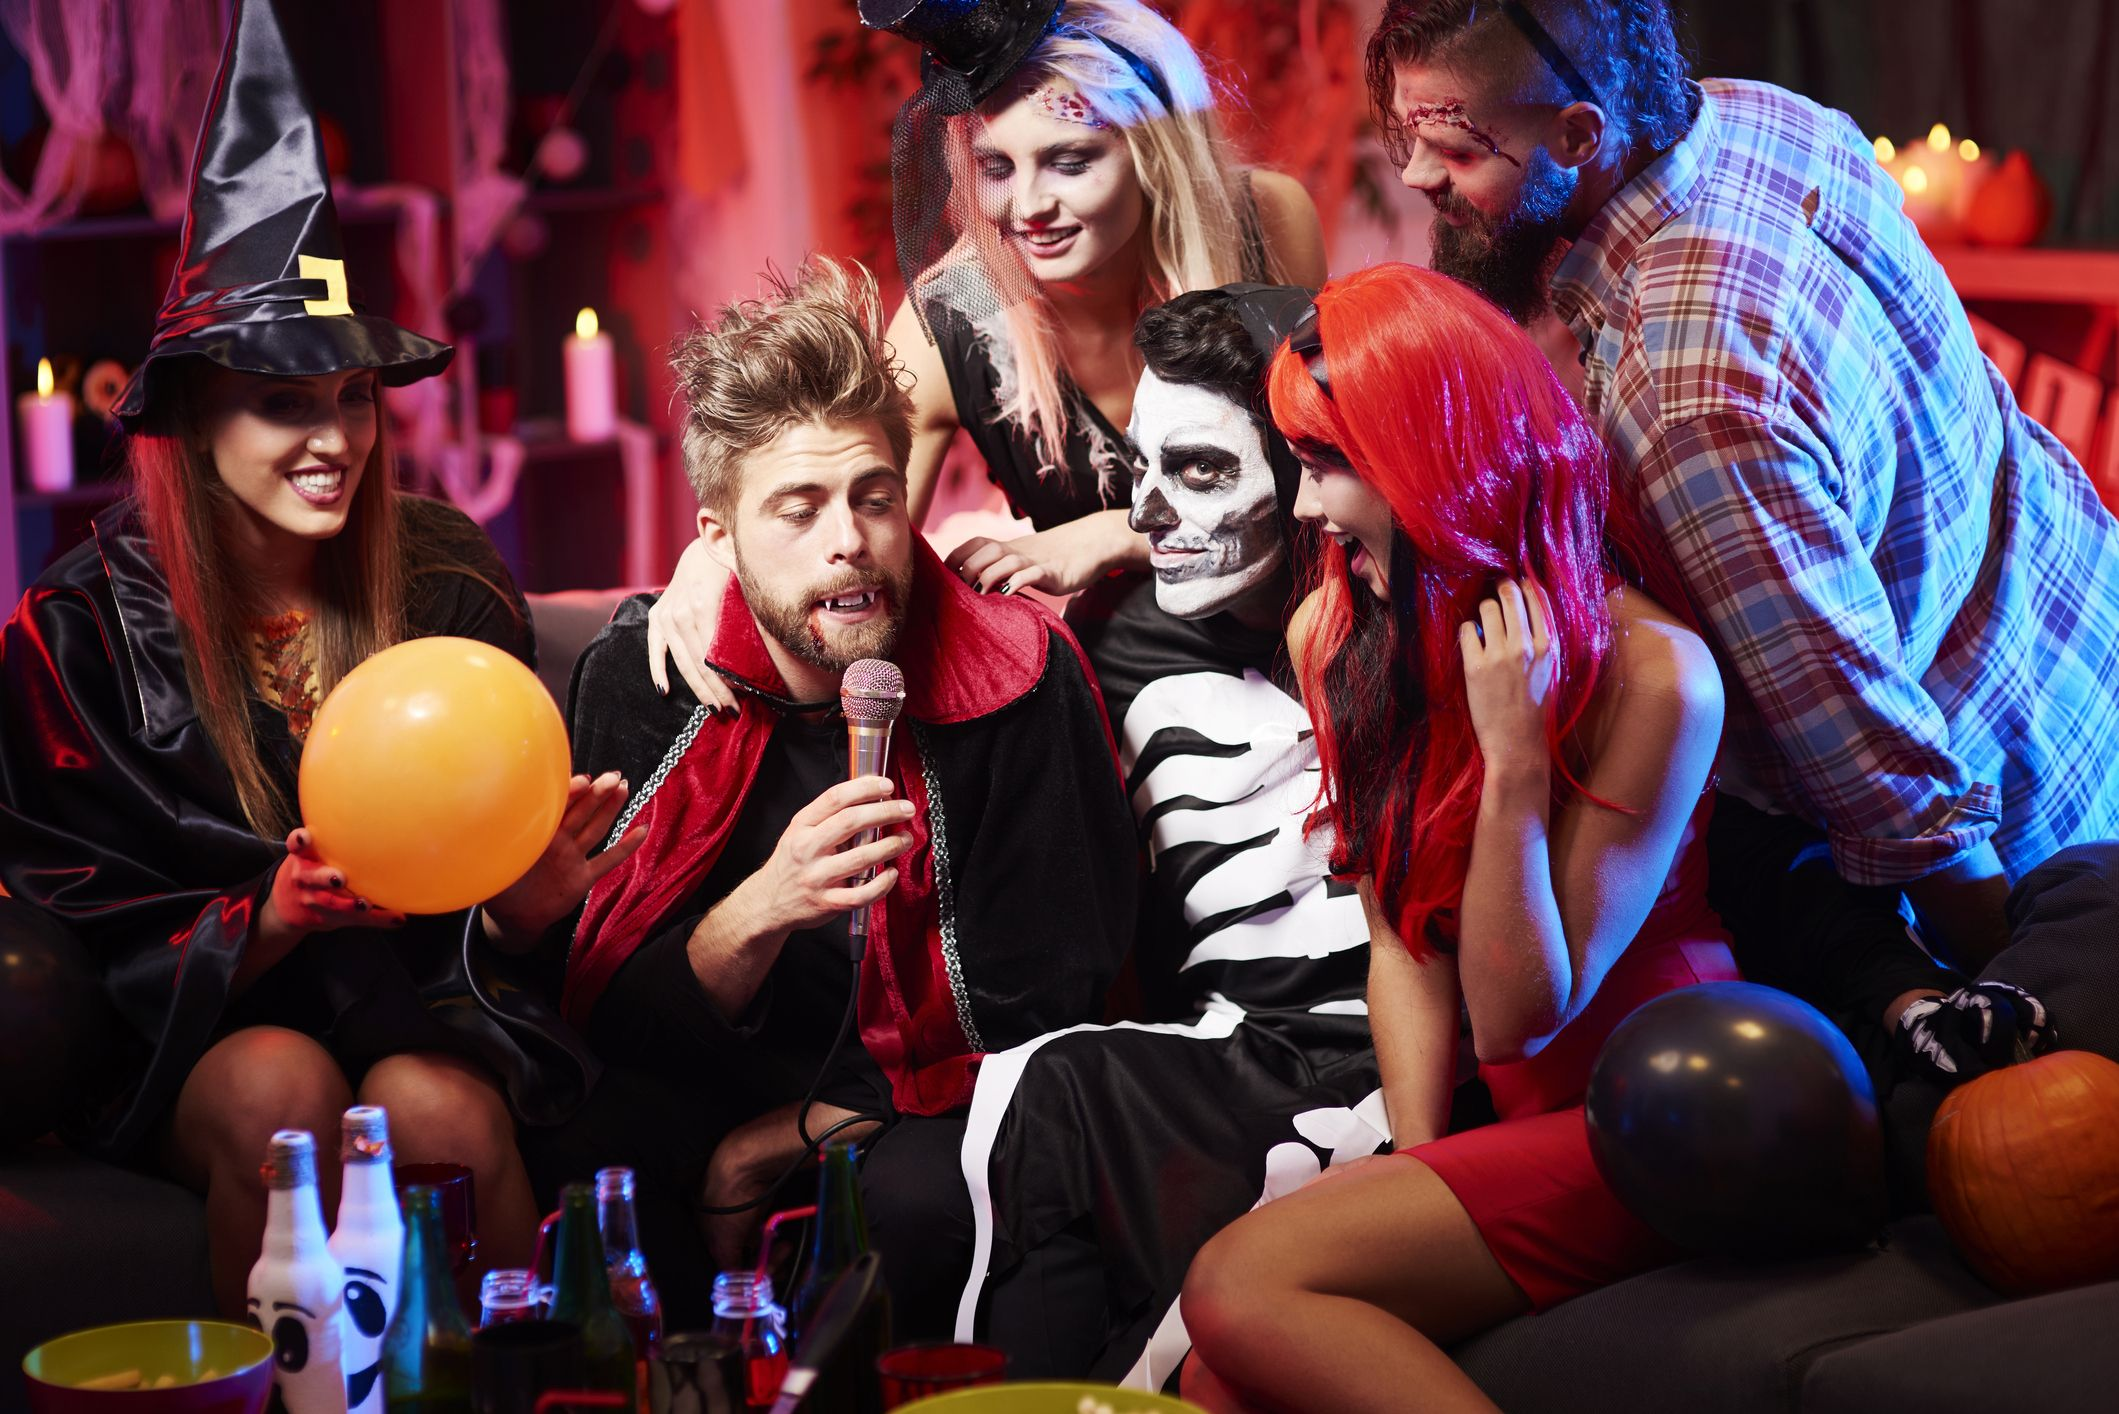 26/10/2020· 36 free halloween party games for adults. 35 Halloween Party Games For Adults Including Halloween Drinking Games